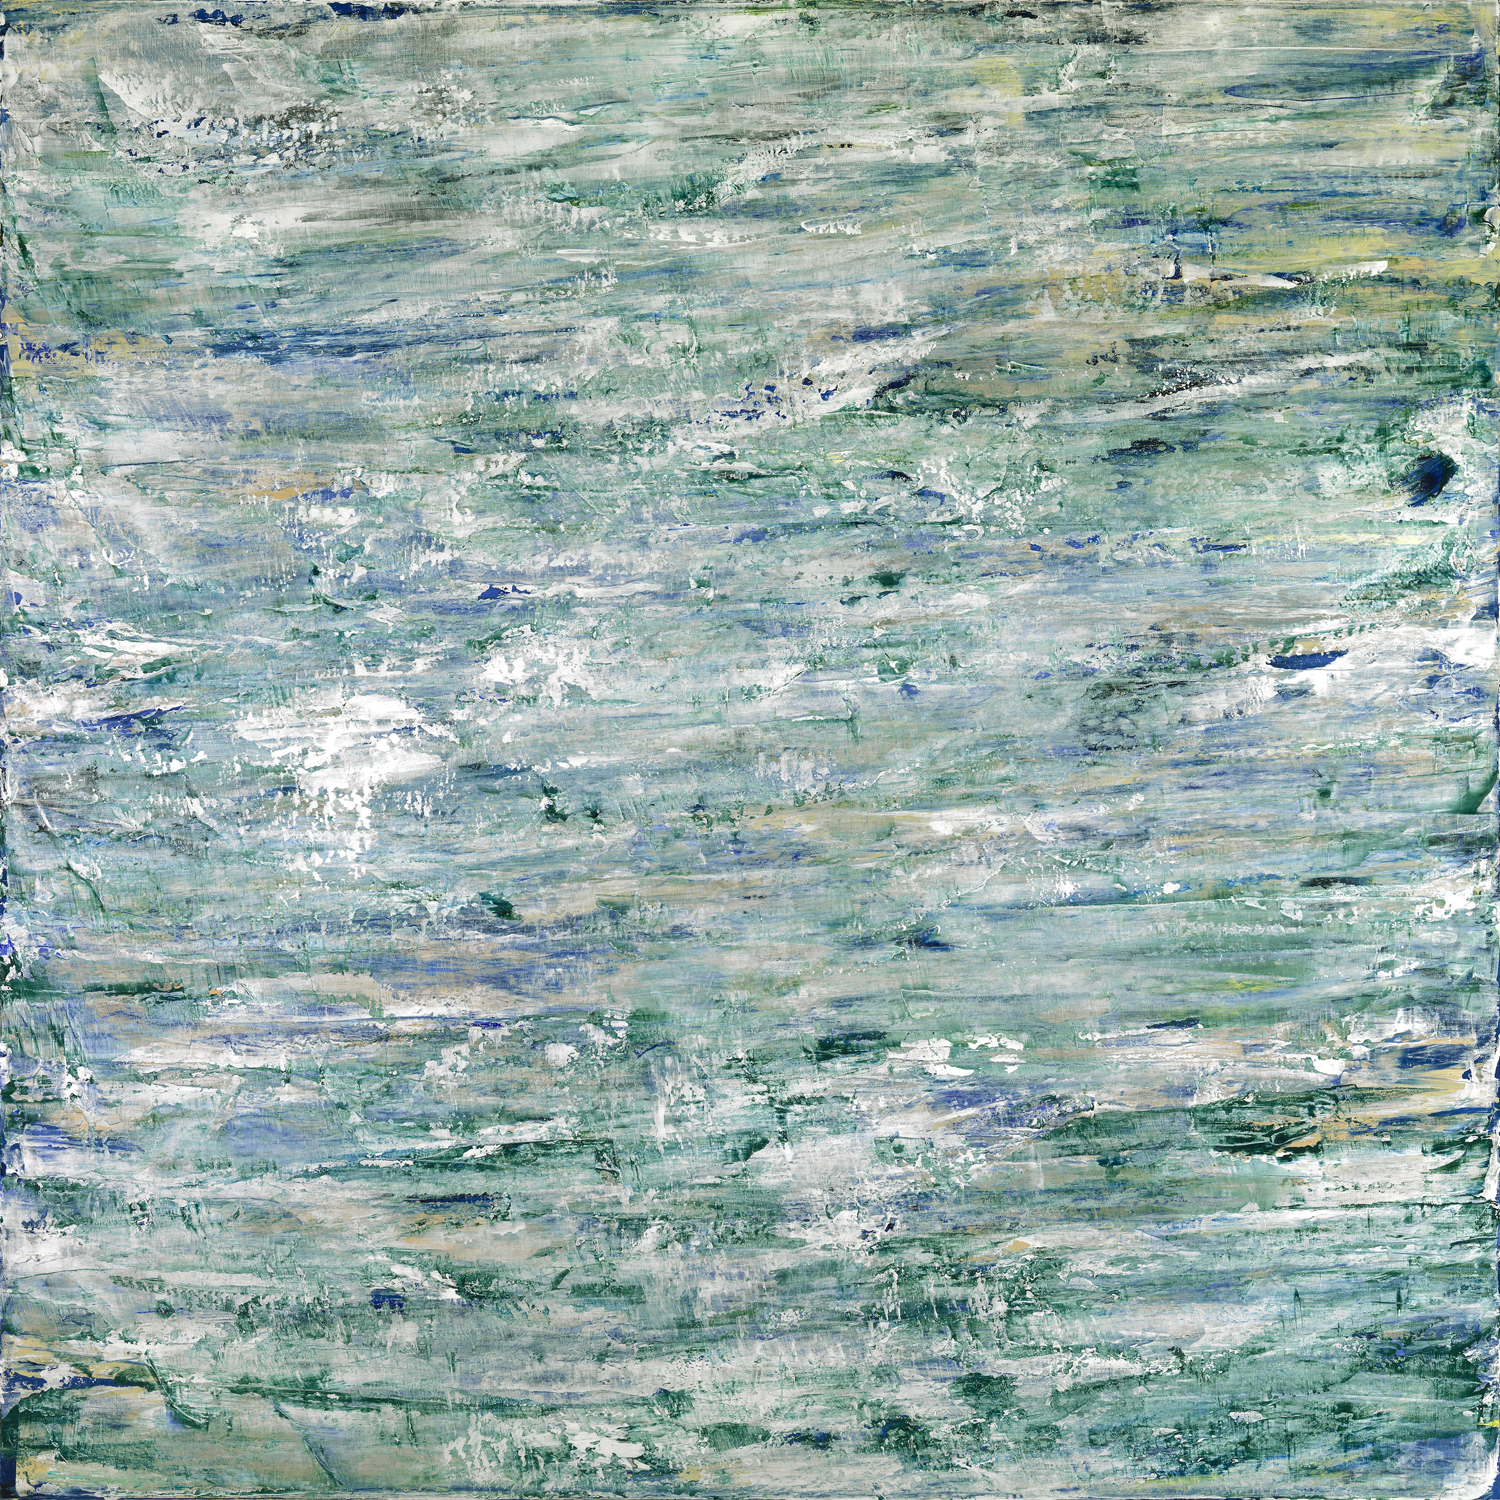 Water Study 006  36 x 36  Acrylic on Linen